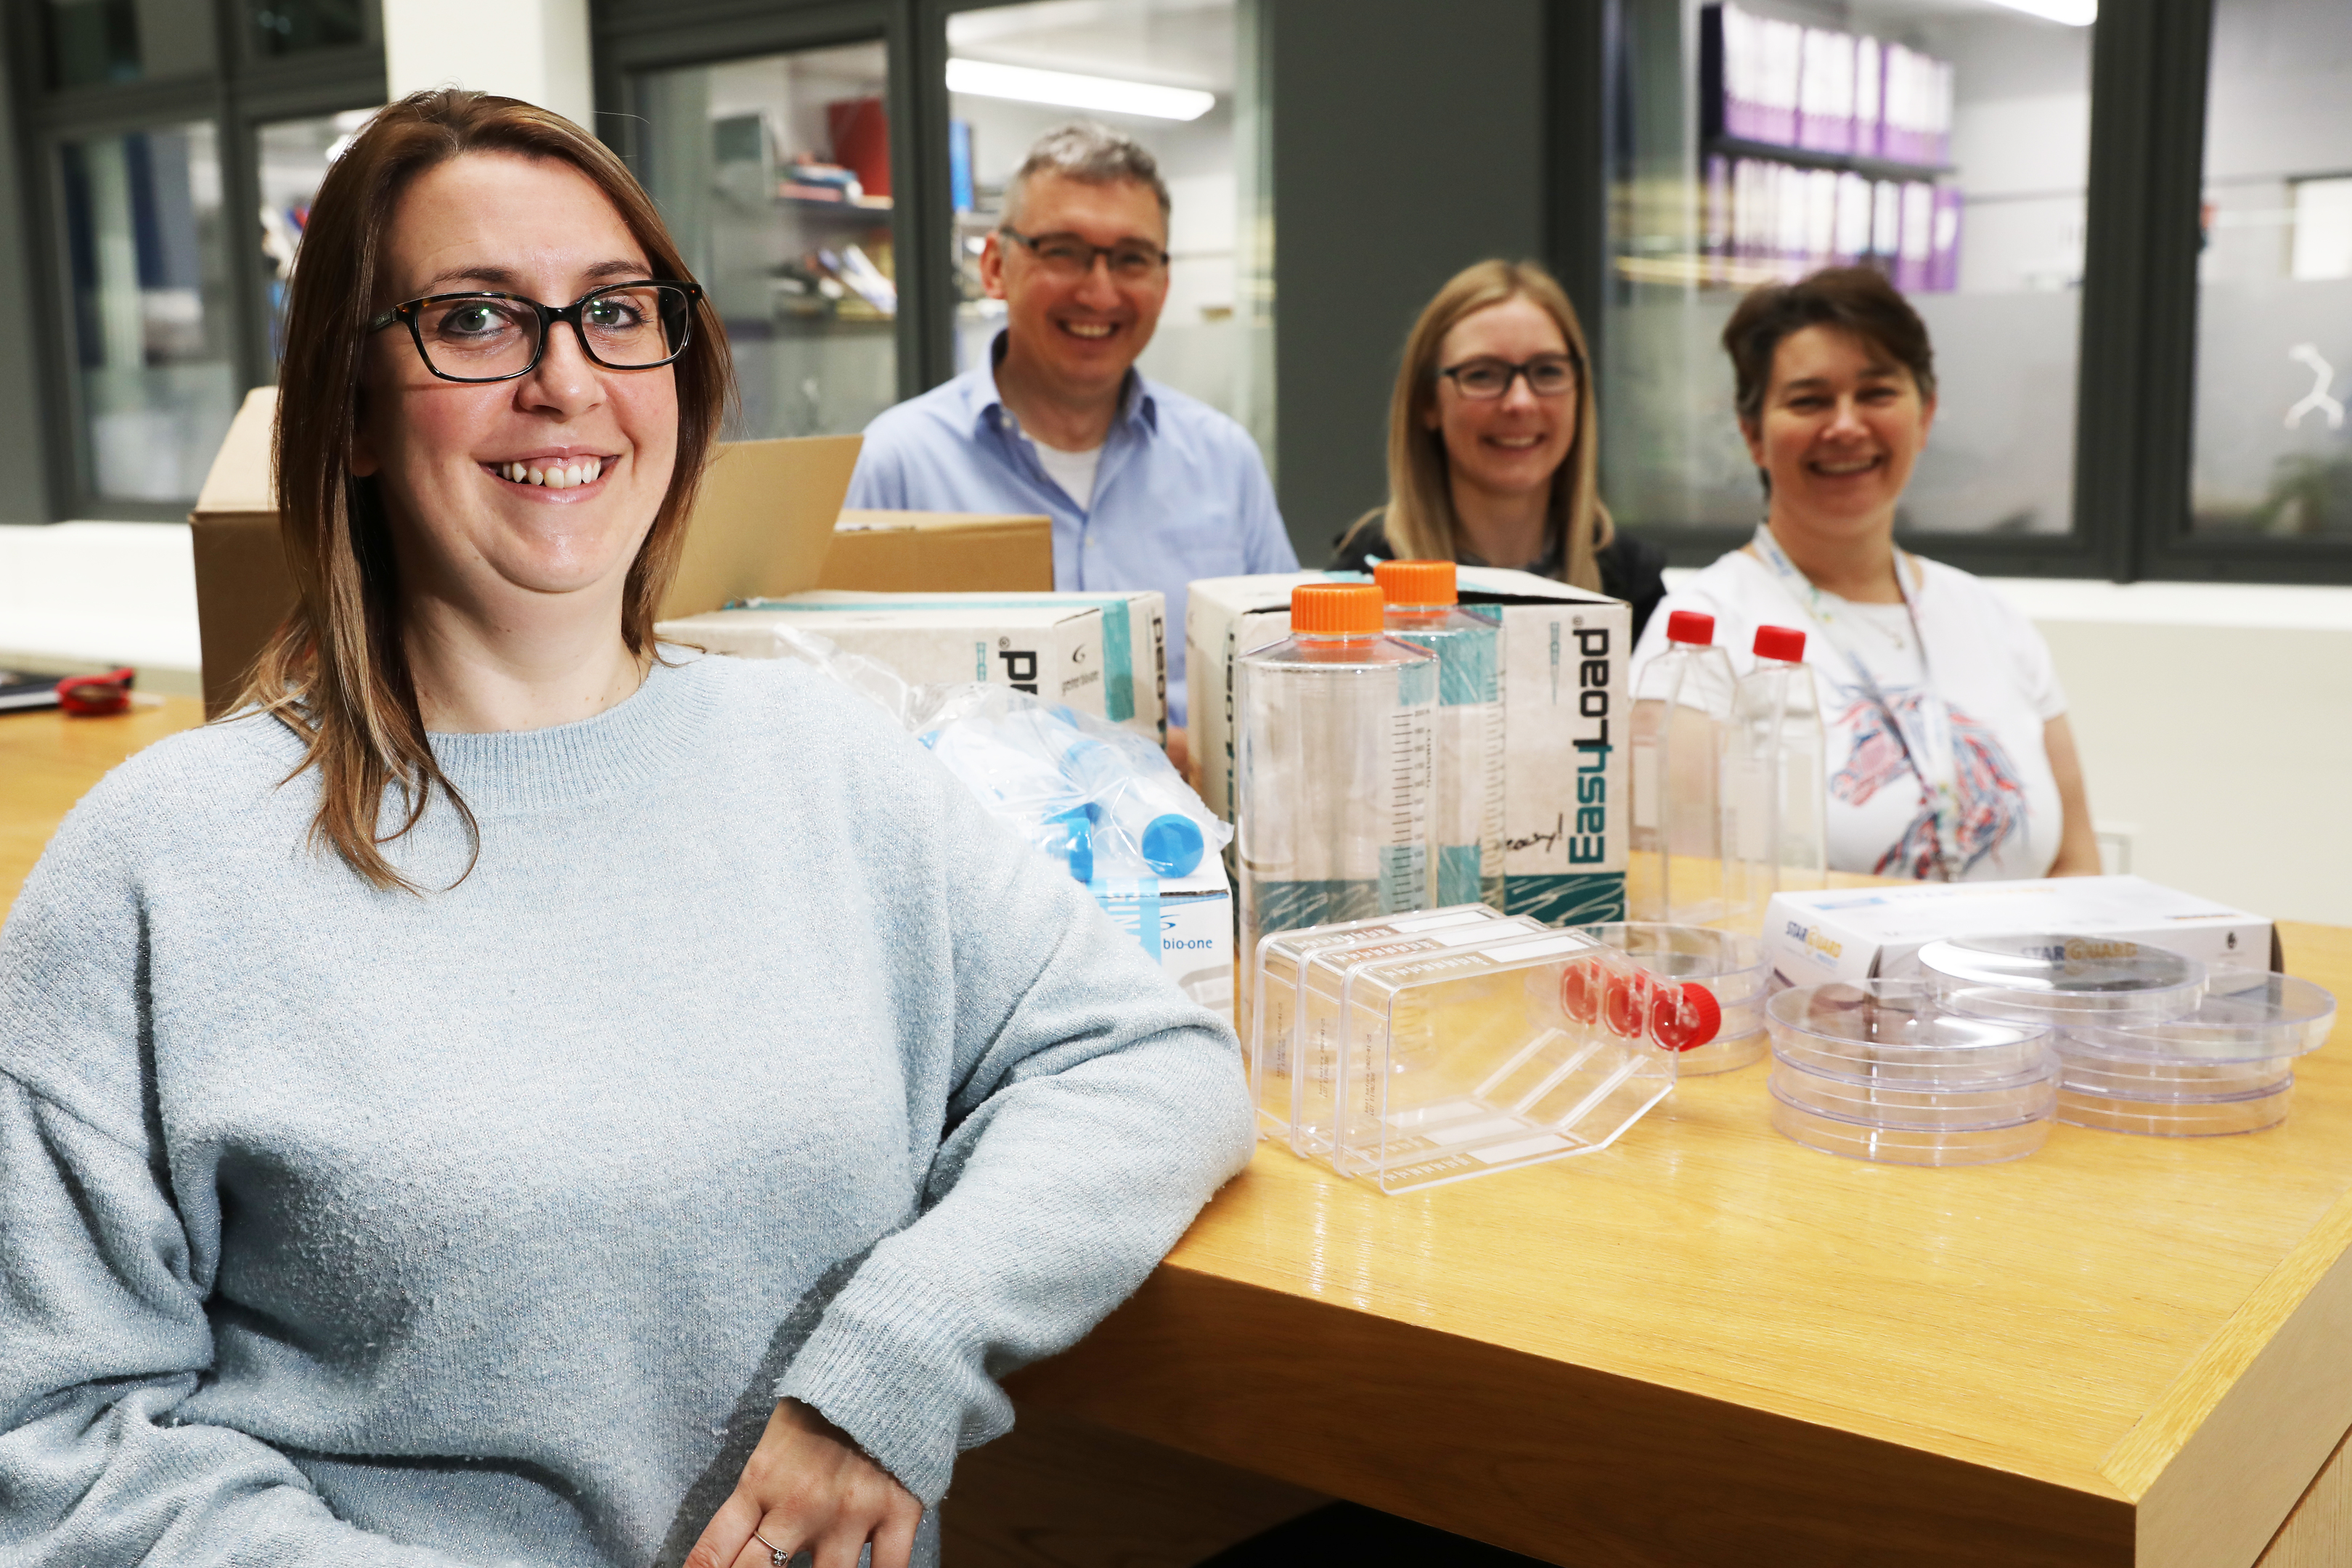 Suze Farrell, Darren Edwards, Lauren Webster and Sandra O'Neill from the University's Wellcome Centre for Anti-Infectives Research.